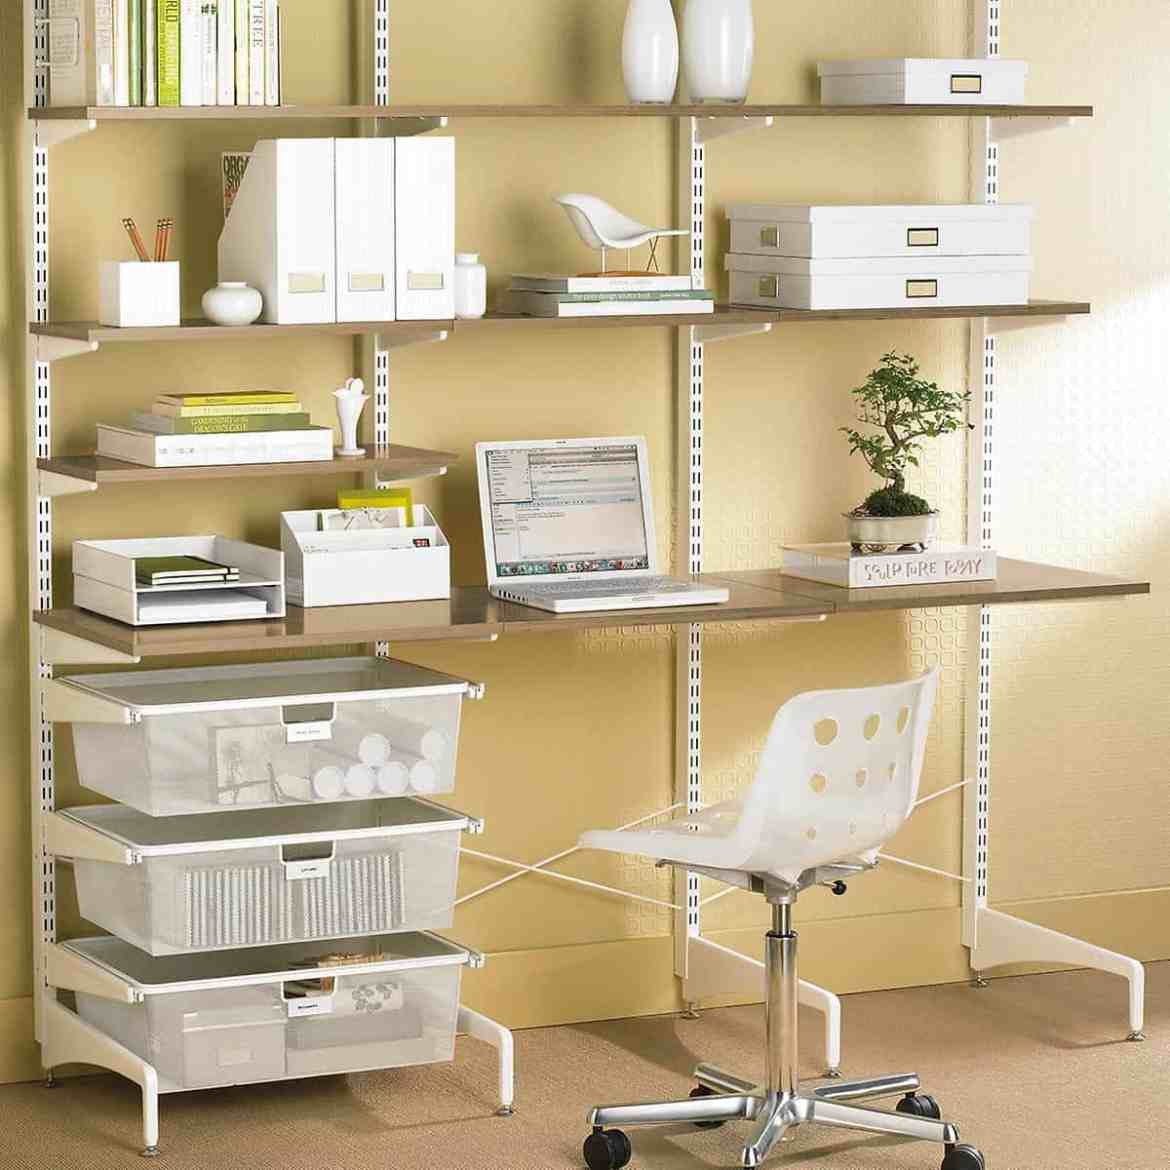 office wall organization ideas. Home Office Wall Organization. Brilliant Organization Ideas E